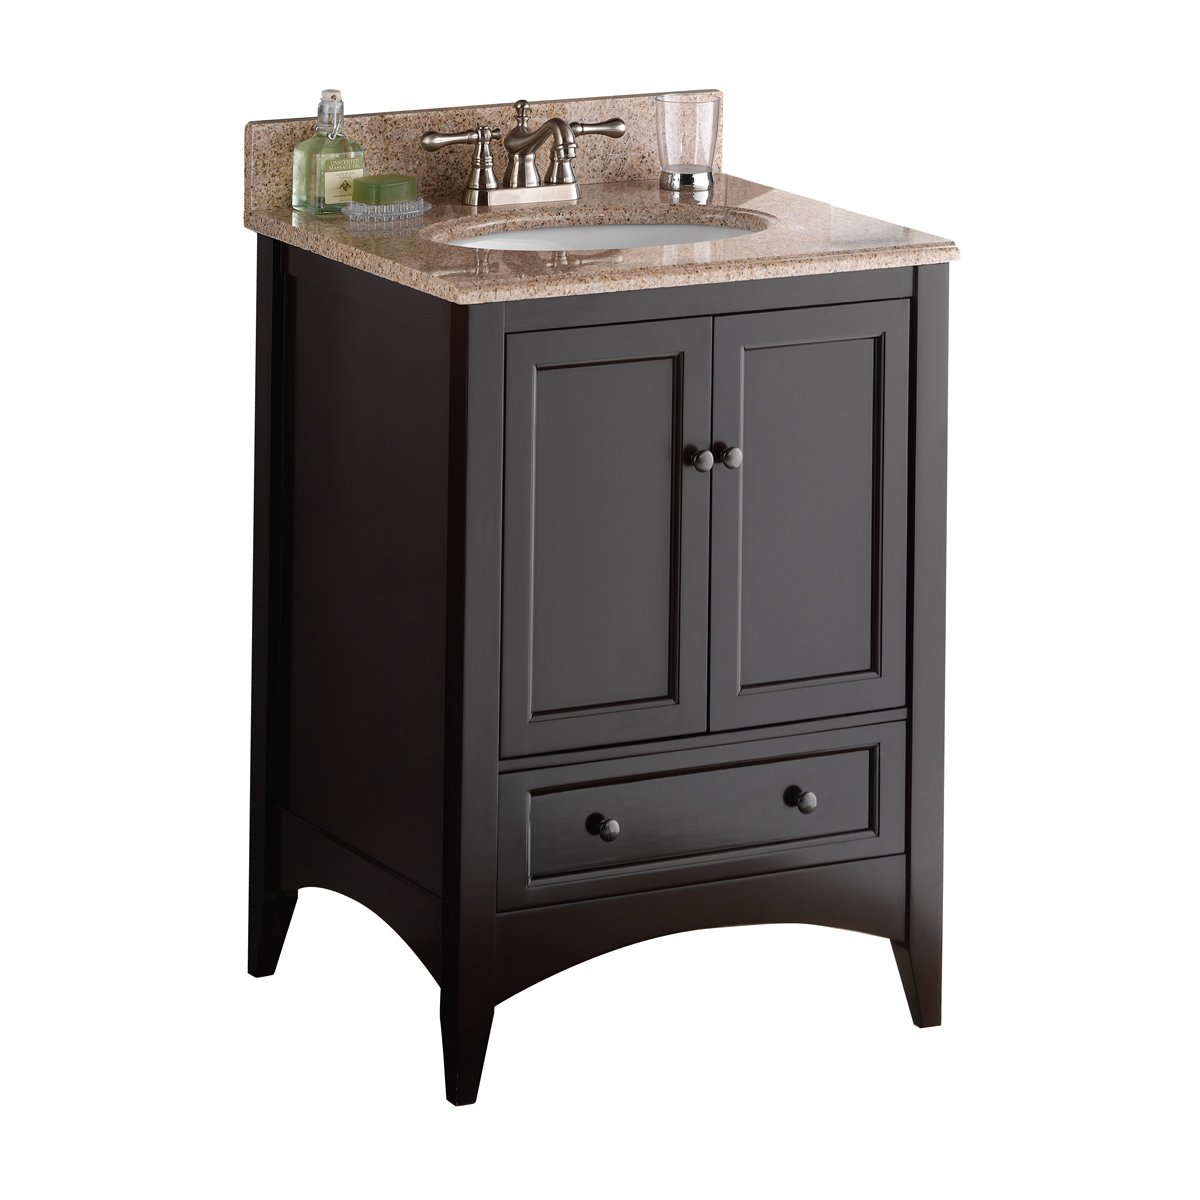 24 In Bathroom Vanity With Sink. Foremost Beca2421d Berkshire 24 Inch Espresso Bathroom Vanity Vanity Sinks Amazon Com